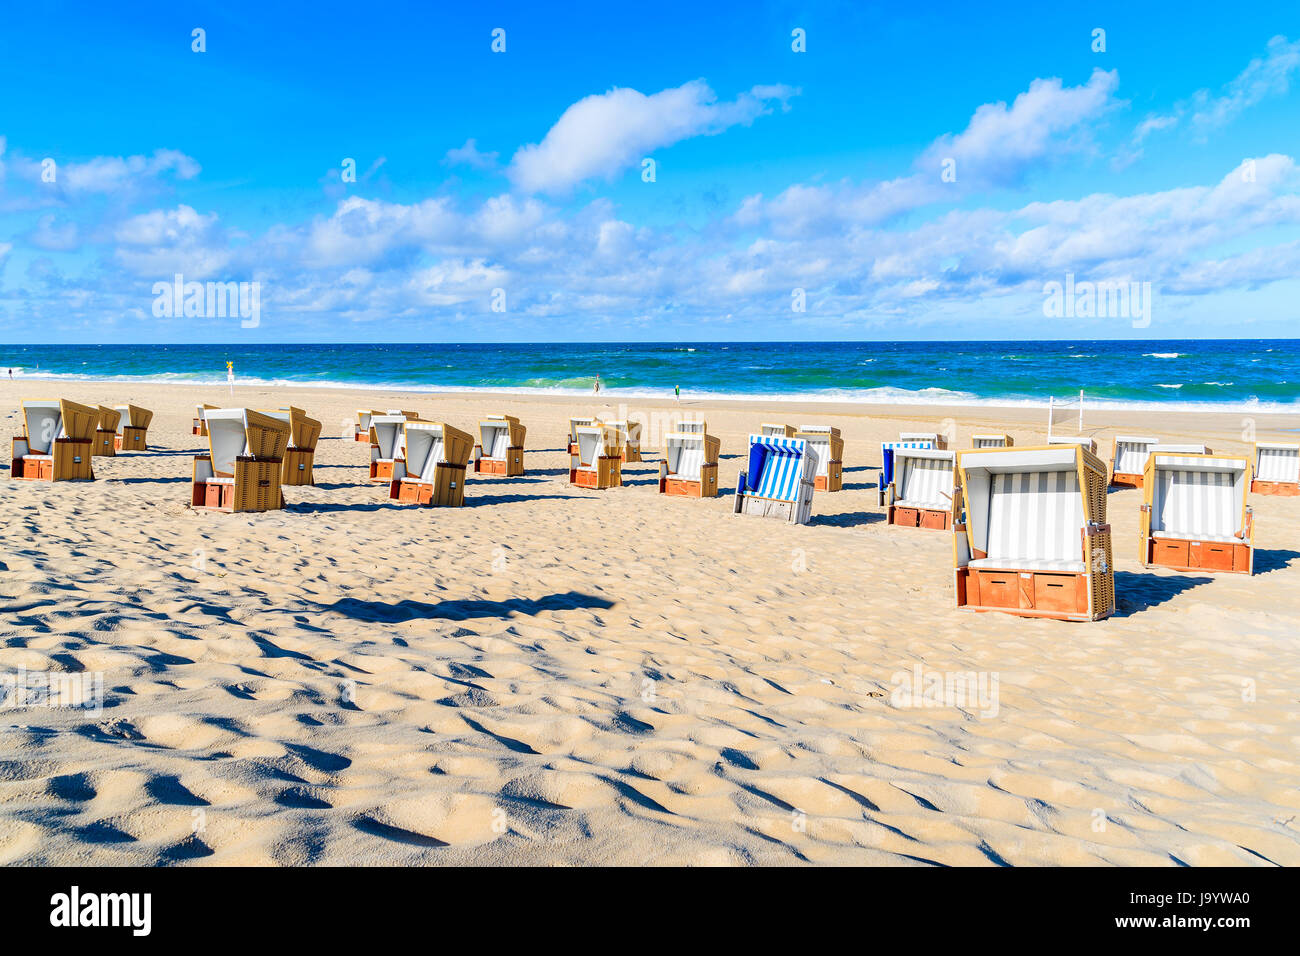 Wicker chairs on white sand beach in Wenningstedt village on Sylt island, North Sea, Germany Stock Photo